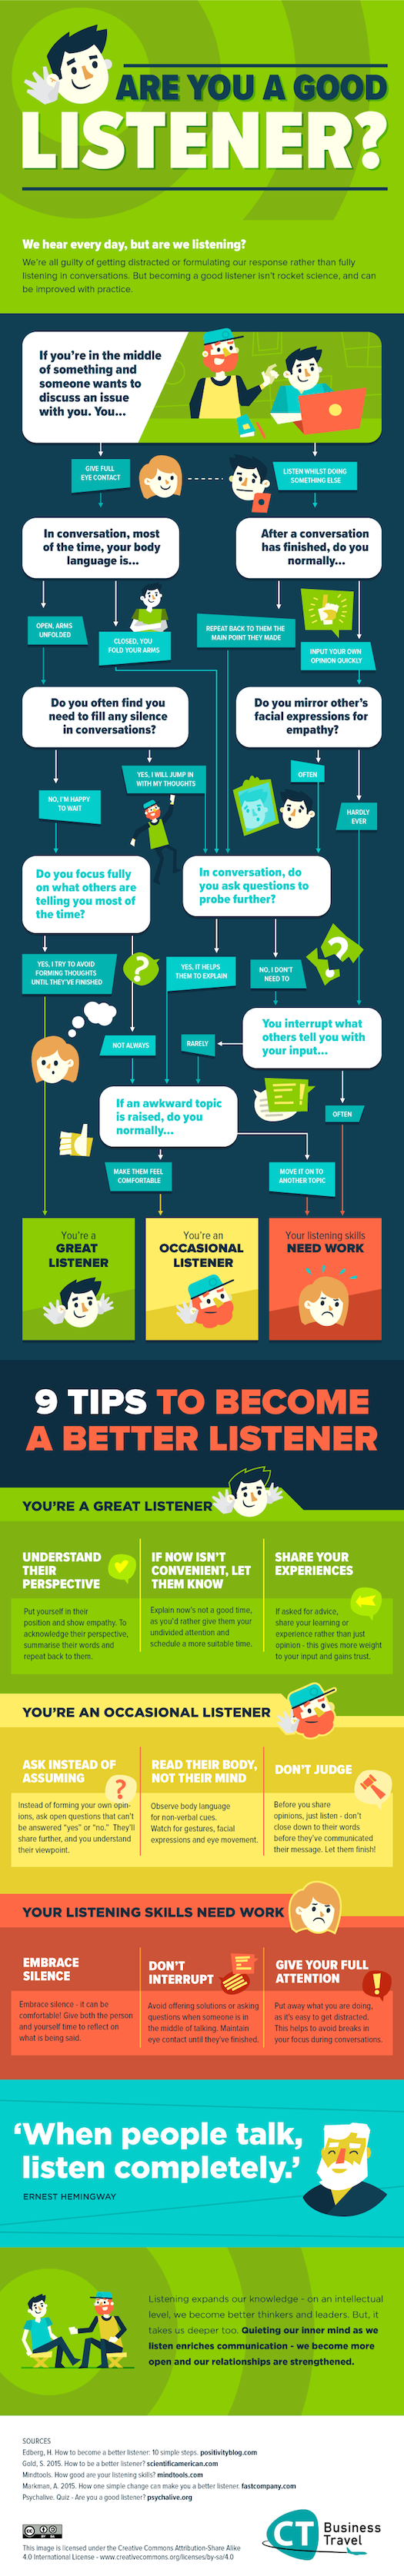 how to be a good listener at work